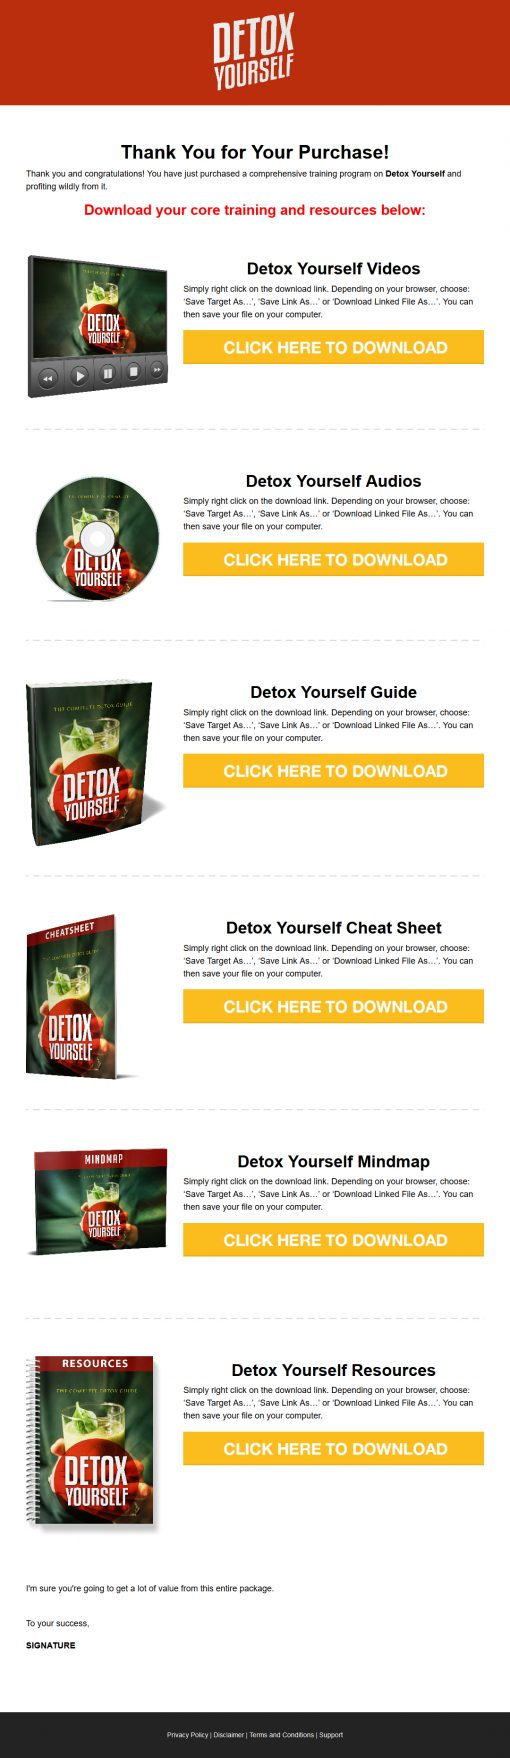 Detox Yourself Ebook and Videos MRR